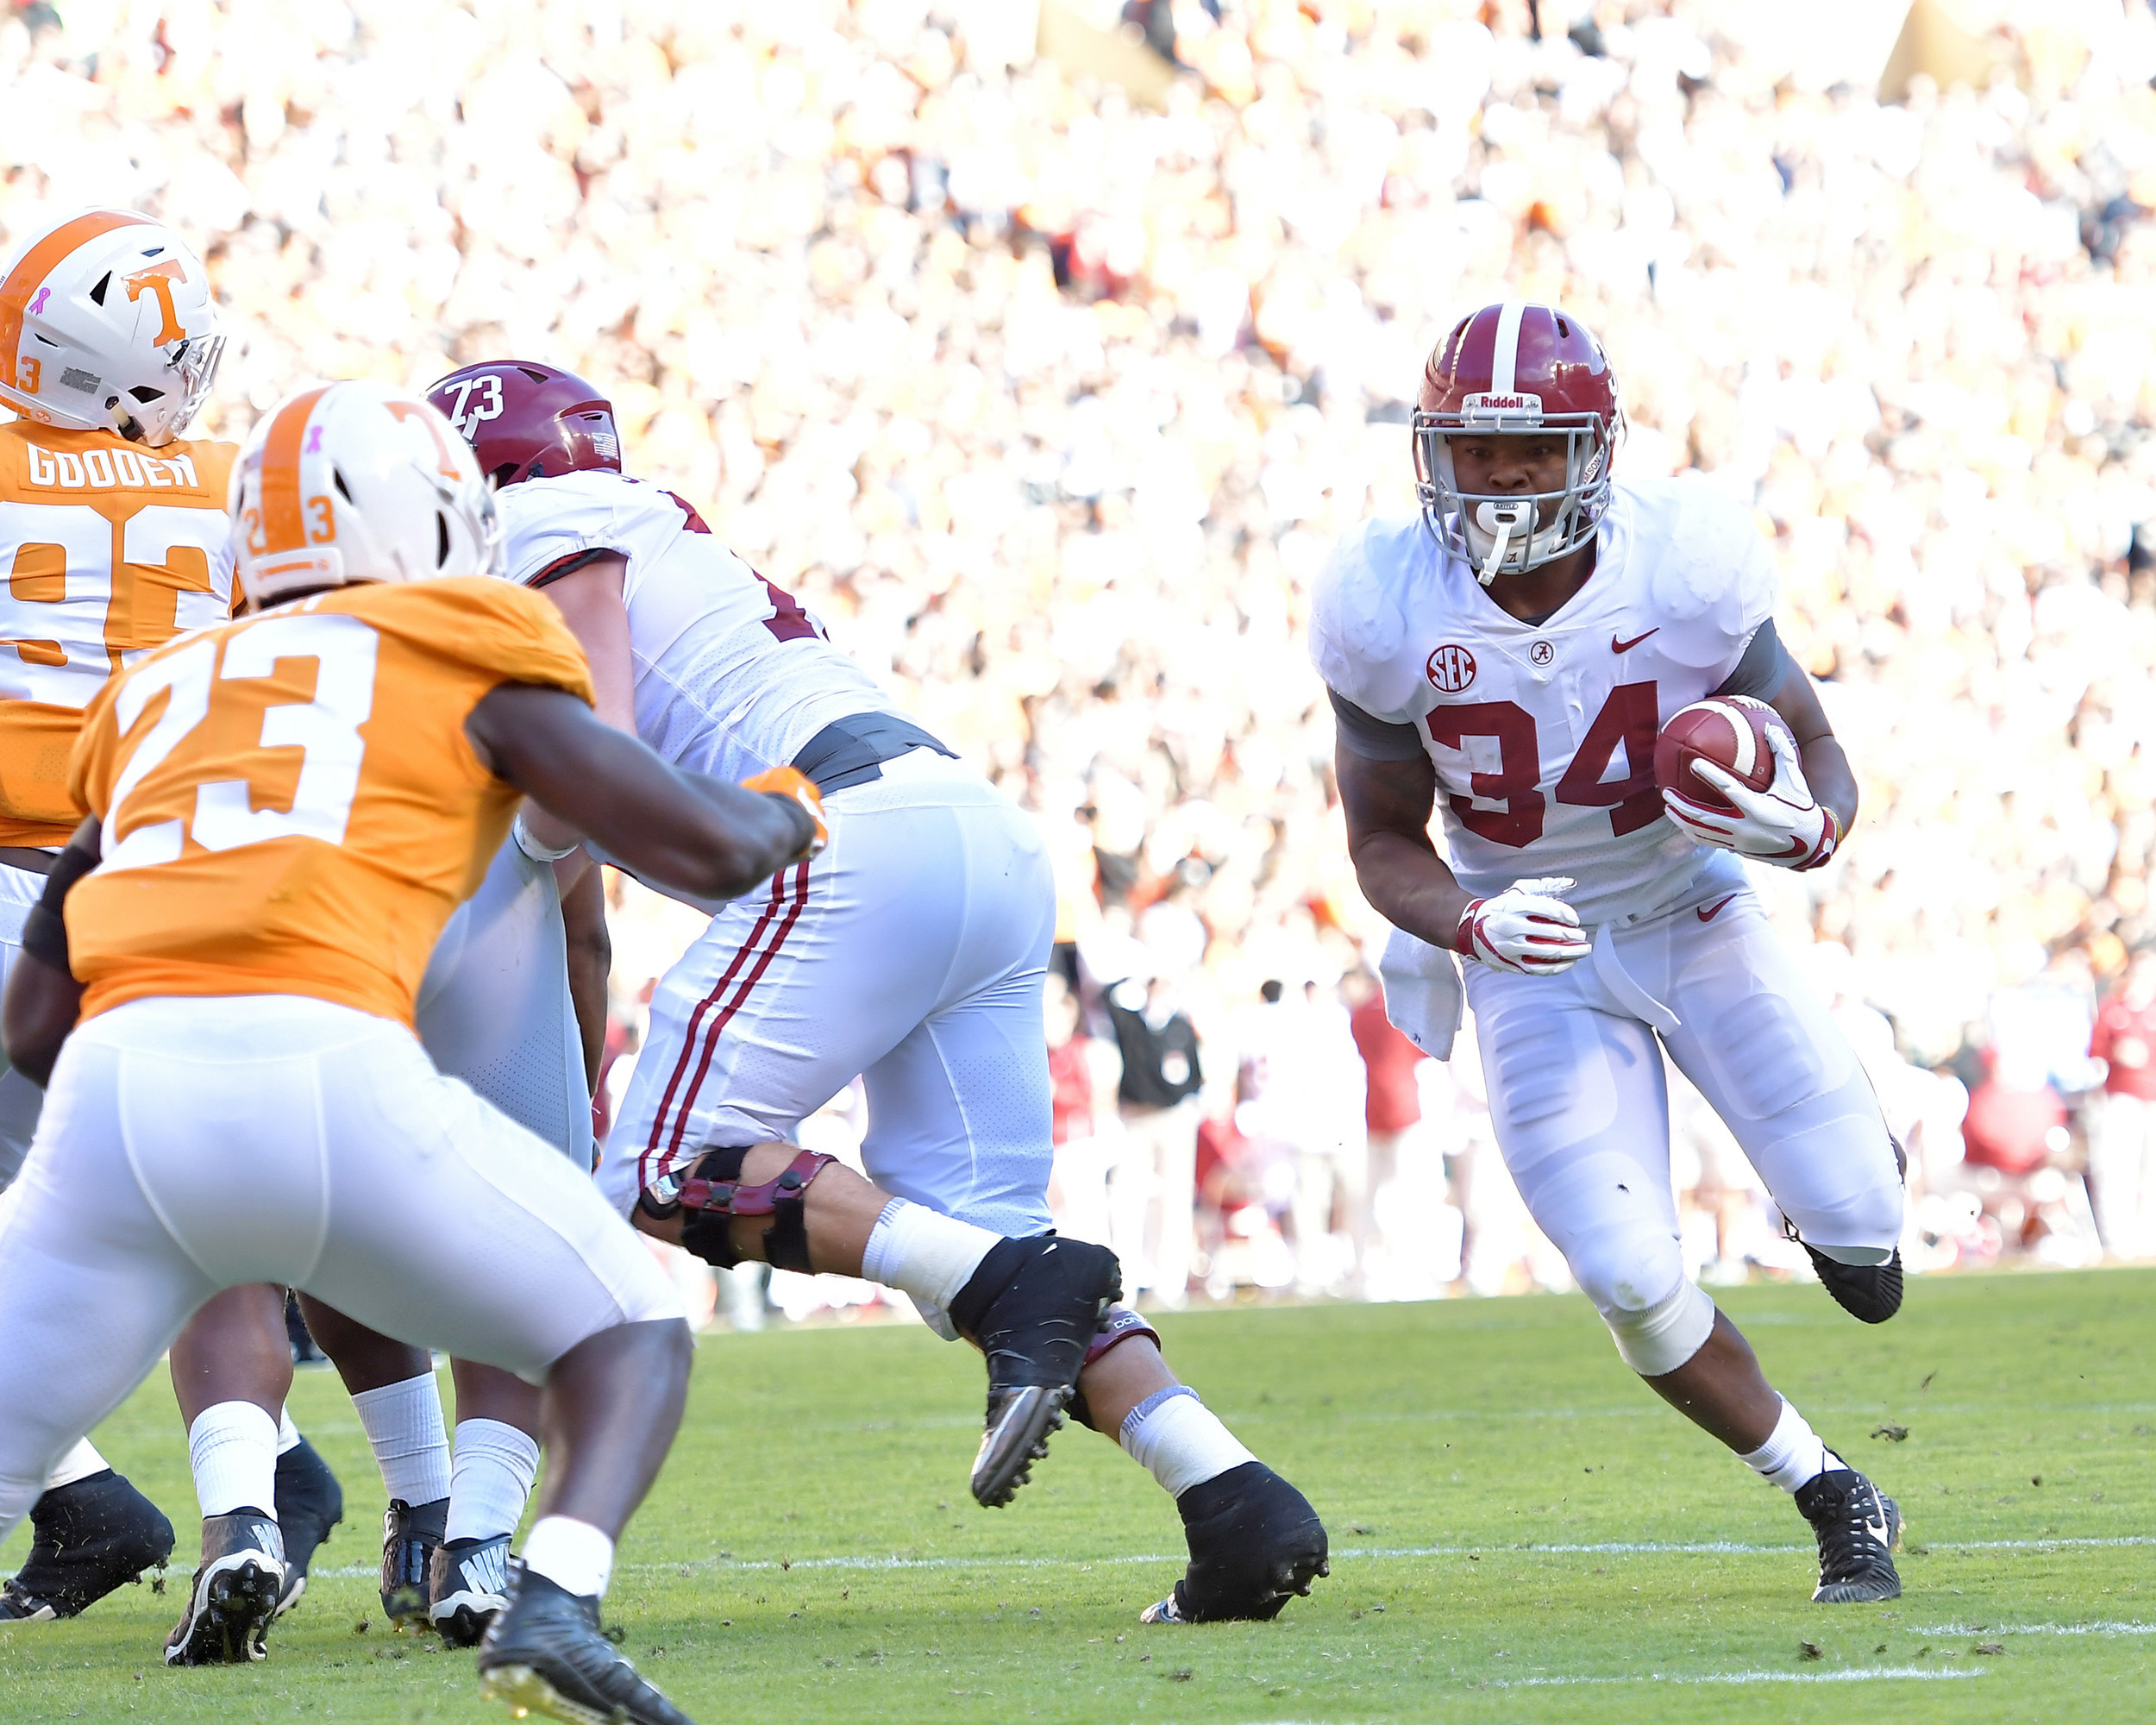 Alabama Crimson Tide running back Damien Harris (34) sweeps around the end on his way to a touchdown during the first quarter of the Alabama at Tennessee NCAA football game on Saturday, Oct. 20, 2018, at Neyland Stadium in Knoxville. Tenn. Alabama wins 58-21. (Photo by Lee Walls)